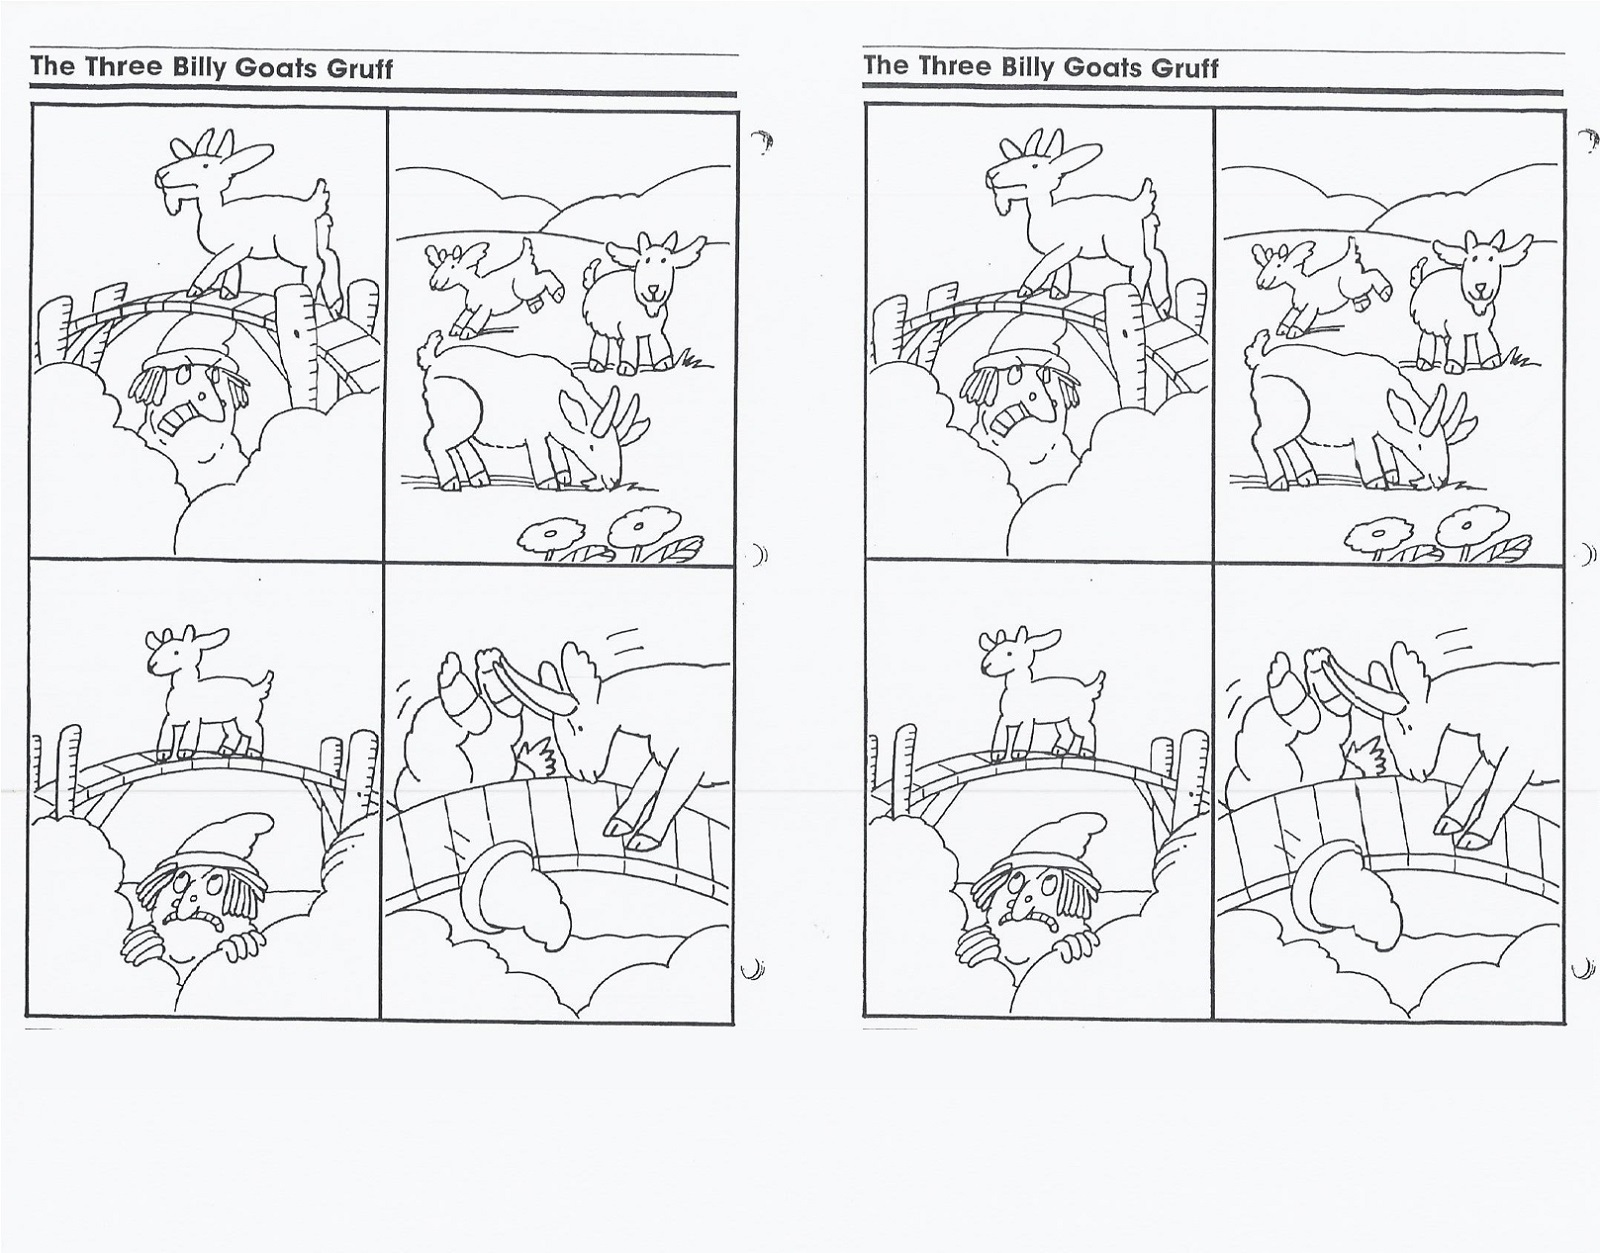 sequencing three billy goats gruff activities